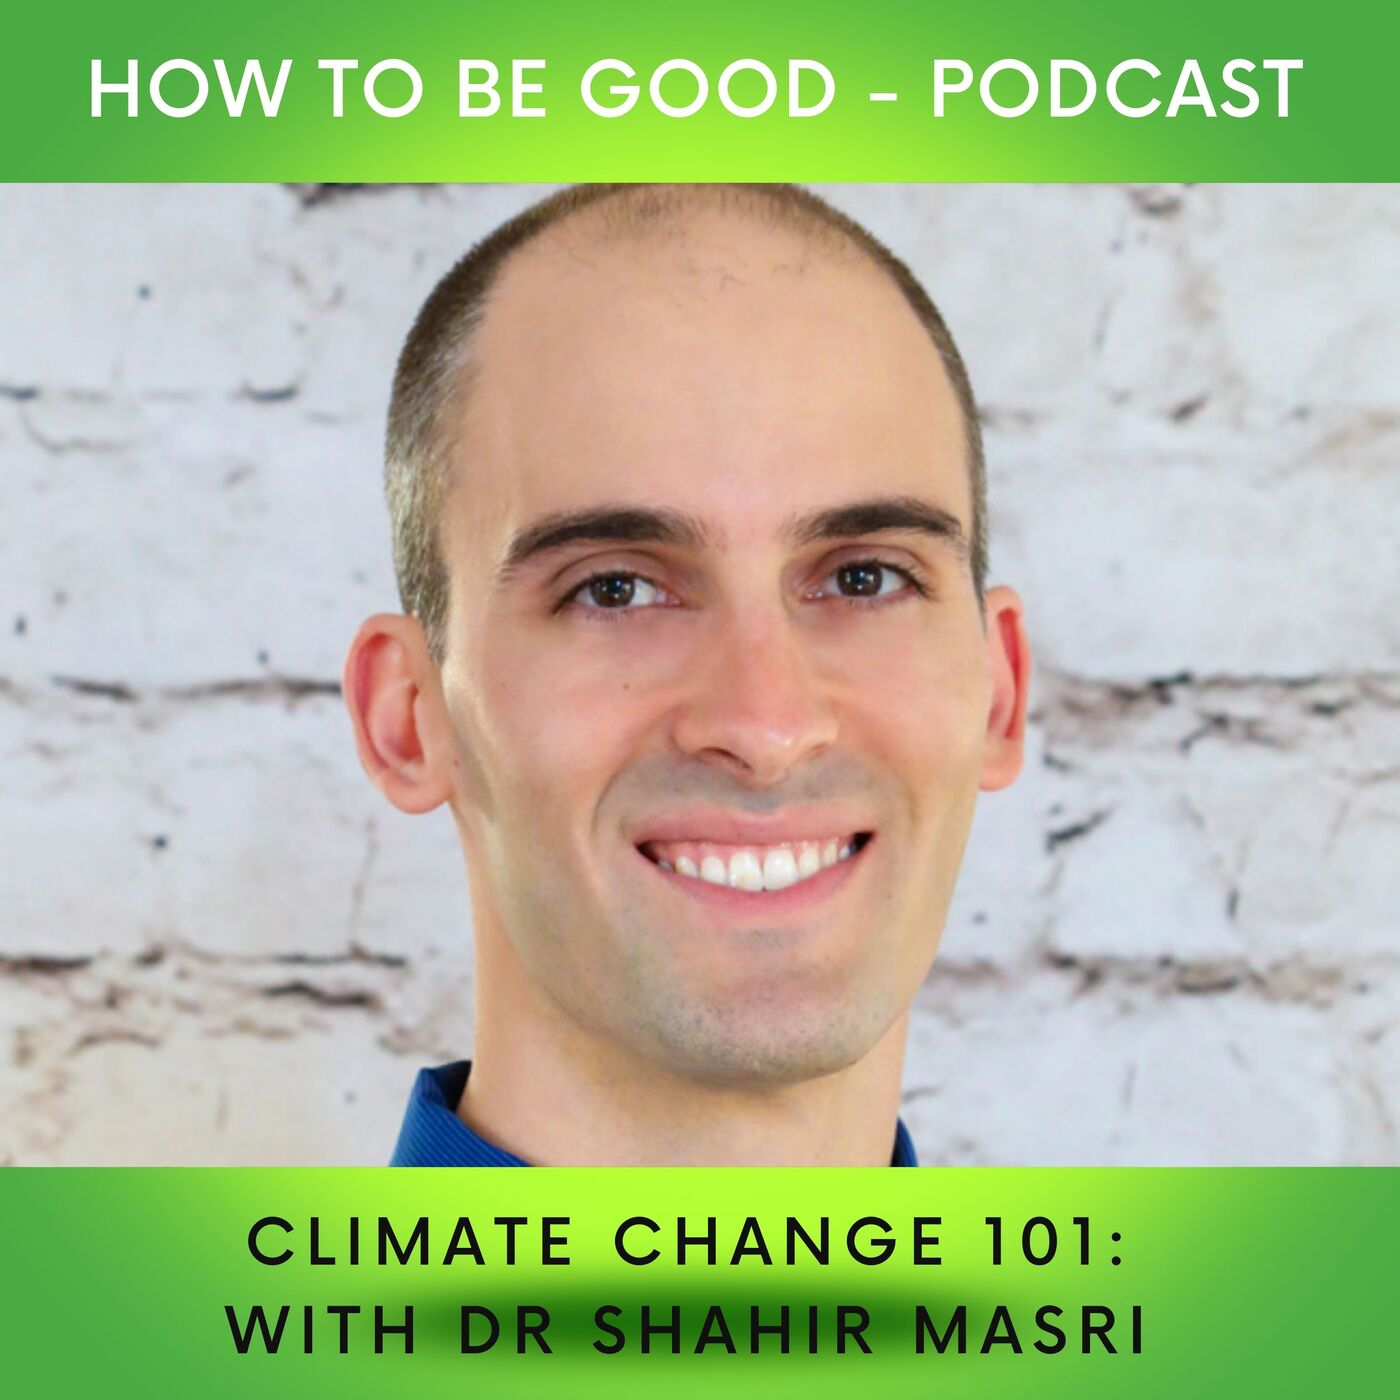 Climate Action 101: we talk to Dr Shahir Masri about the misconceptions of climate change and more